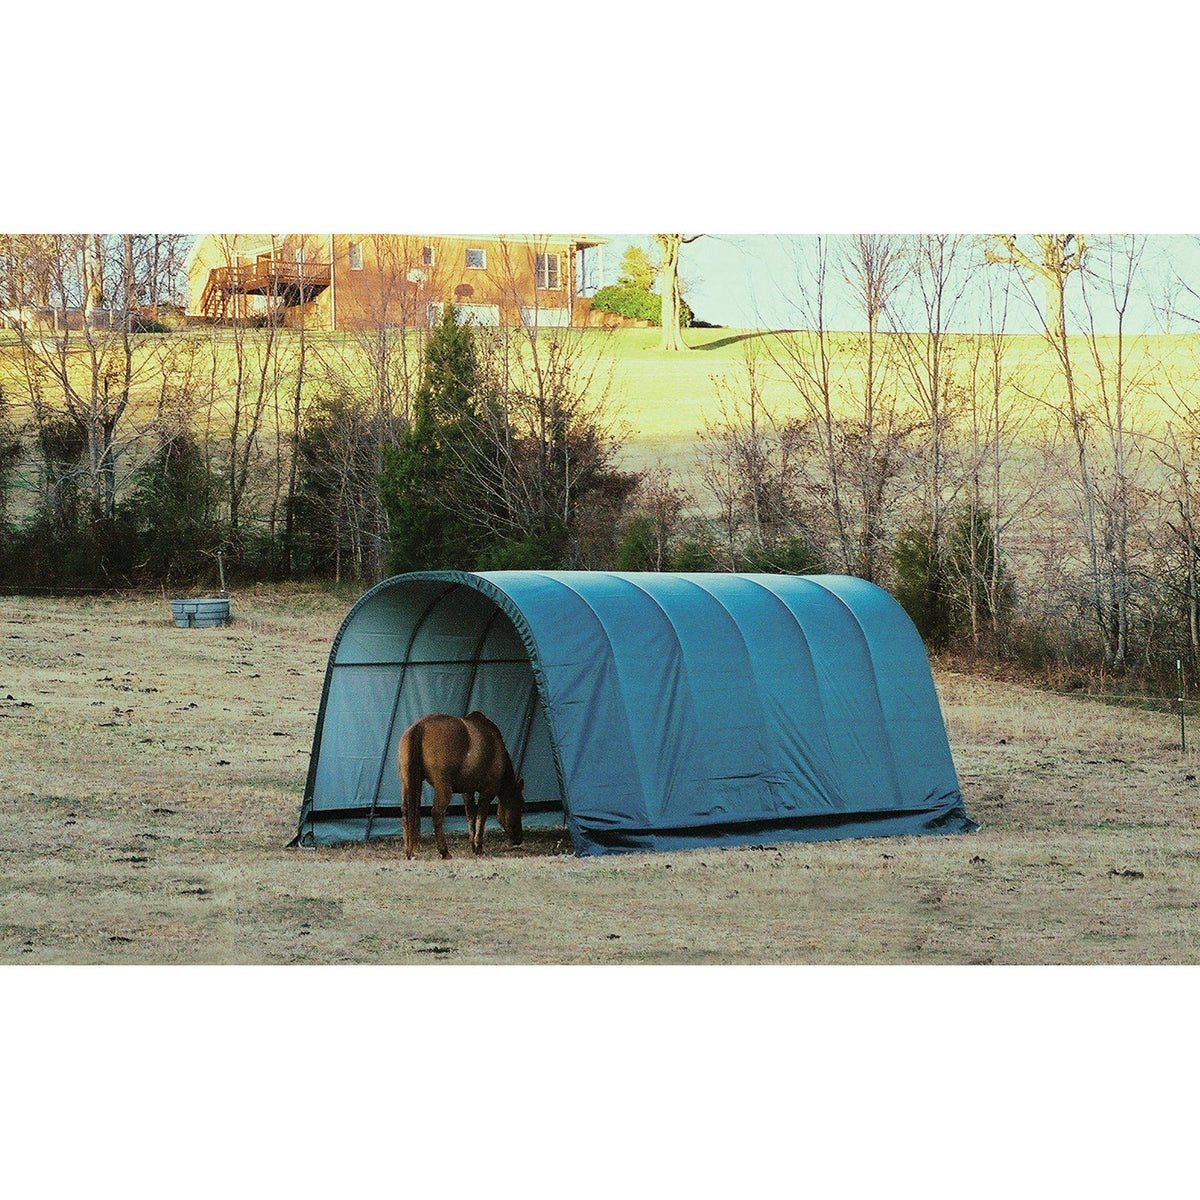 ShelterLogic Round Style Run-In Shelter, Green, 12 x 20 x 10 ft.